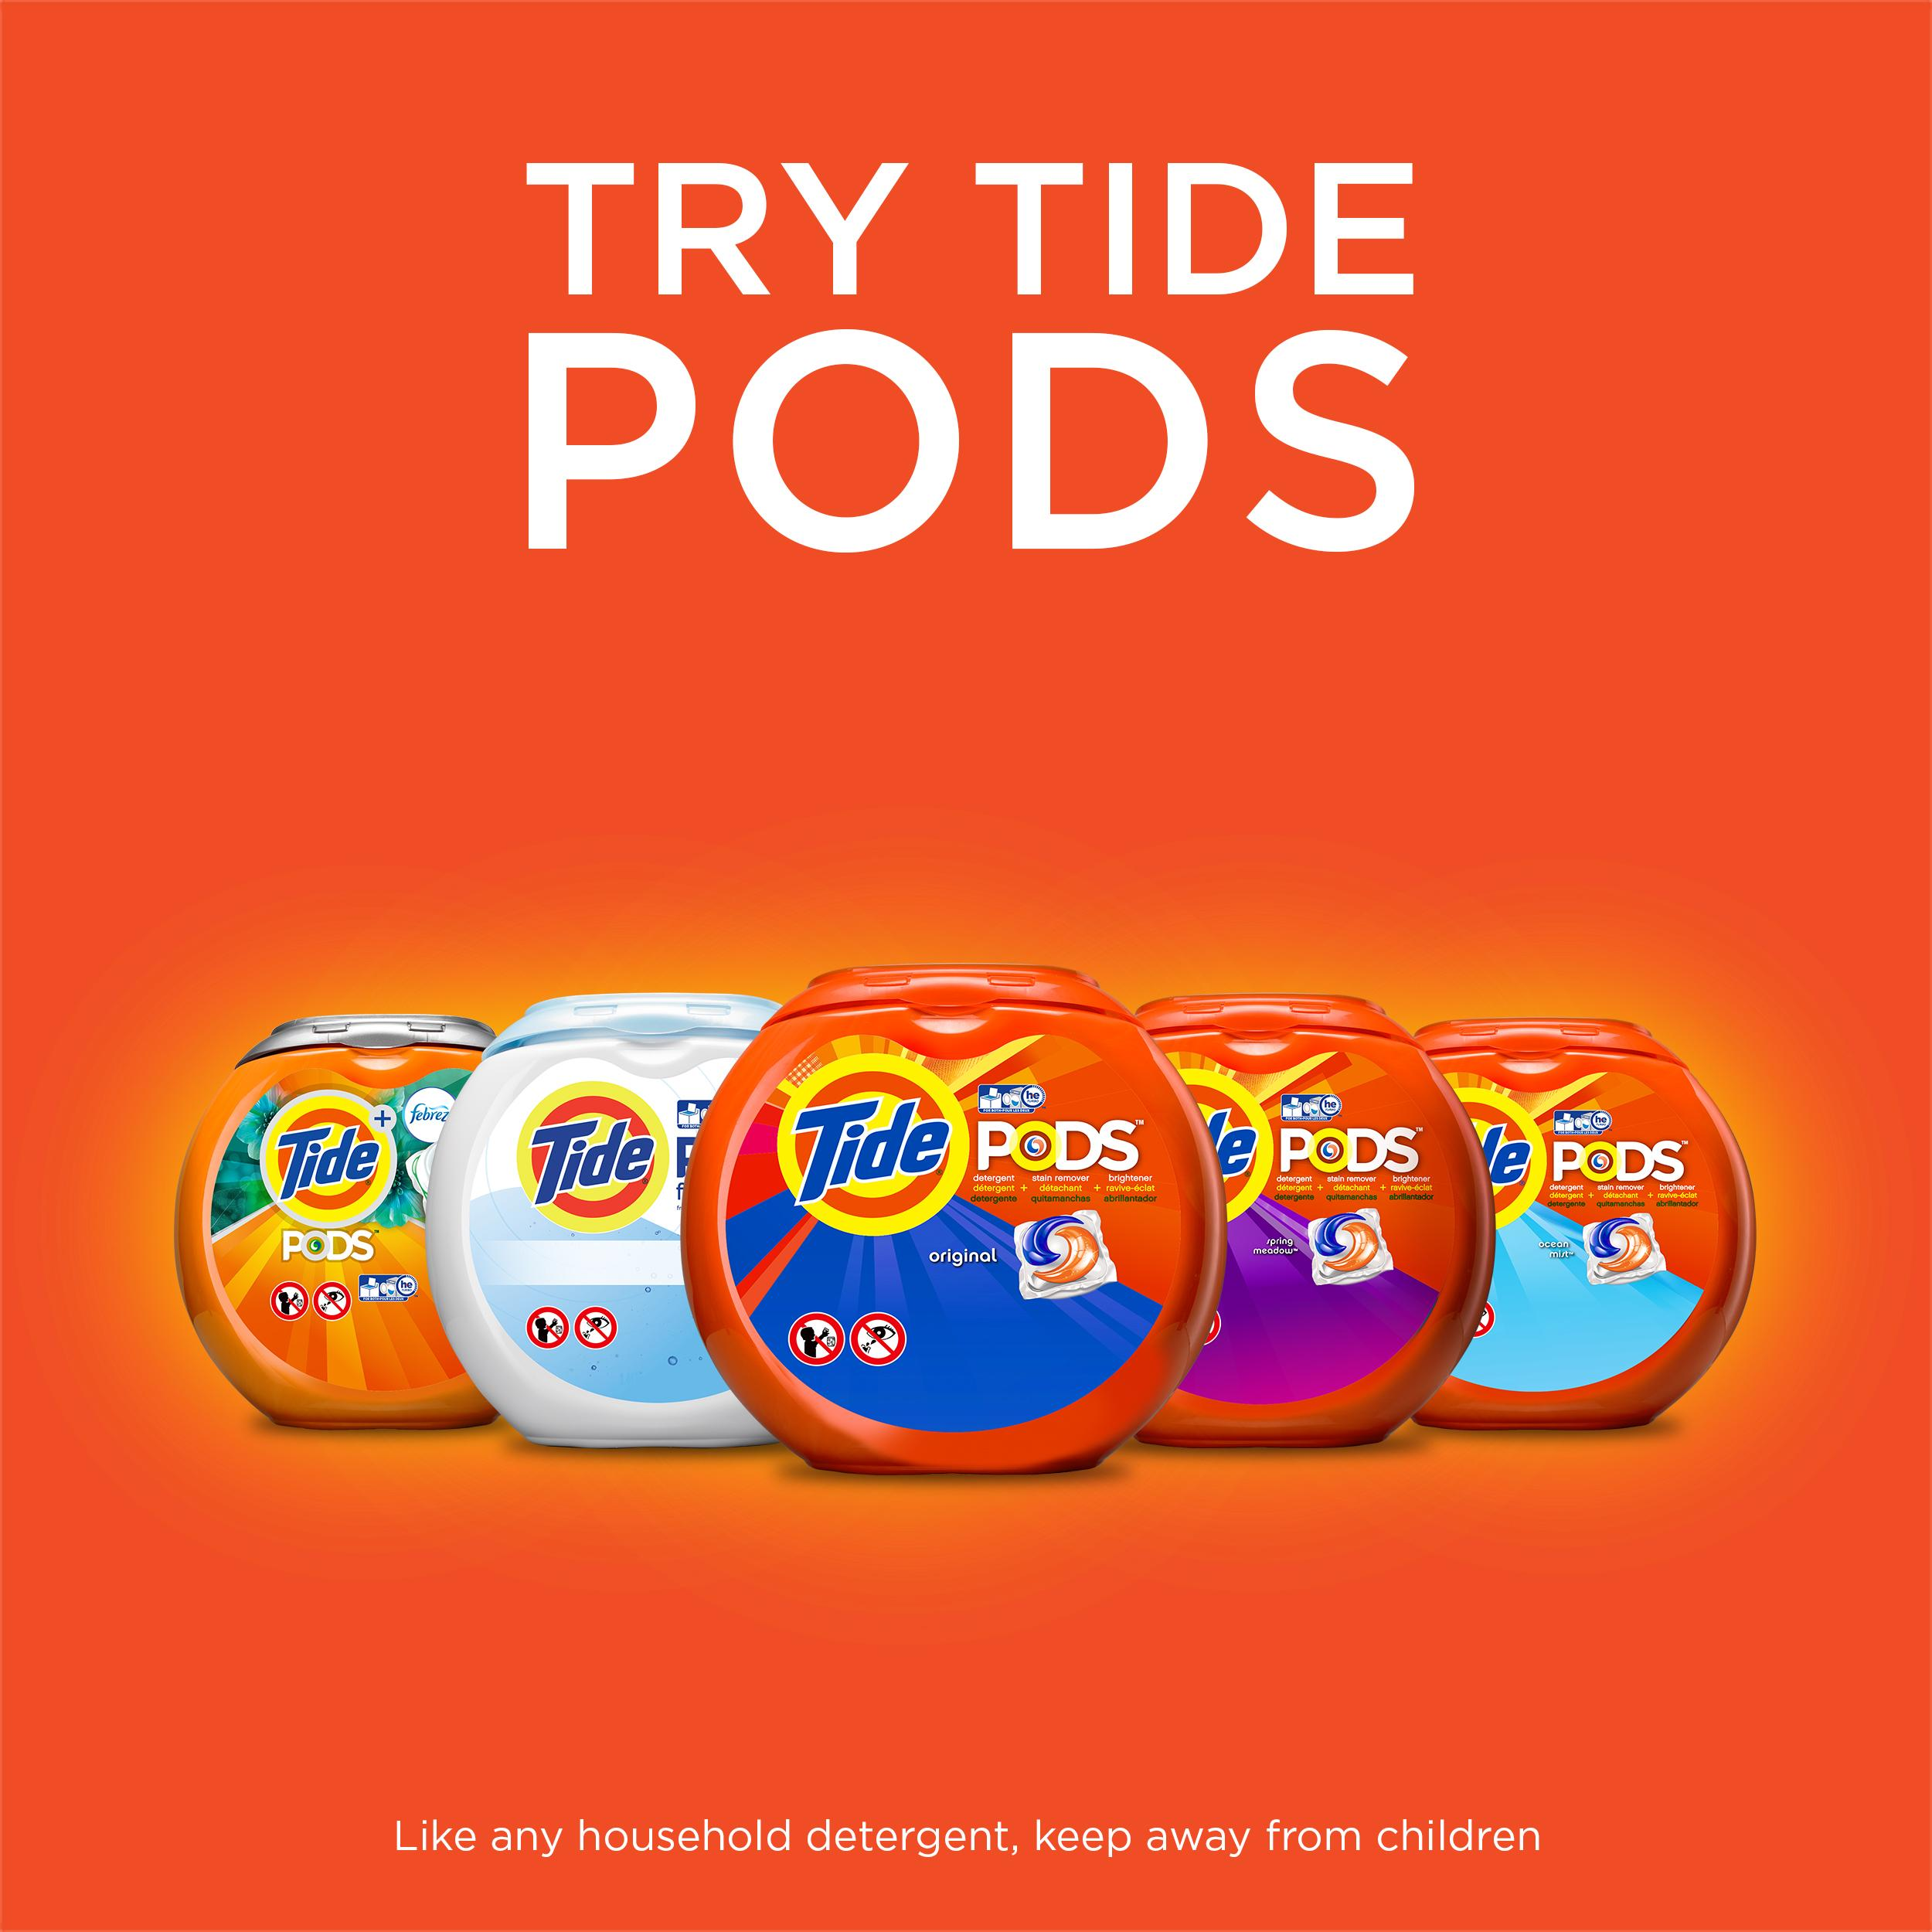 Tide Plus Touch of Downy, April Fresh Scent, Liquid Laundry Detergent, 46 Fl Oz, 24 Loads